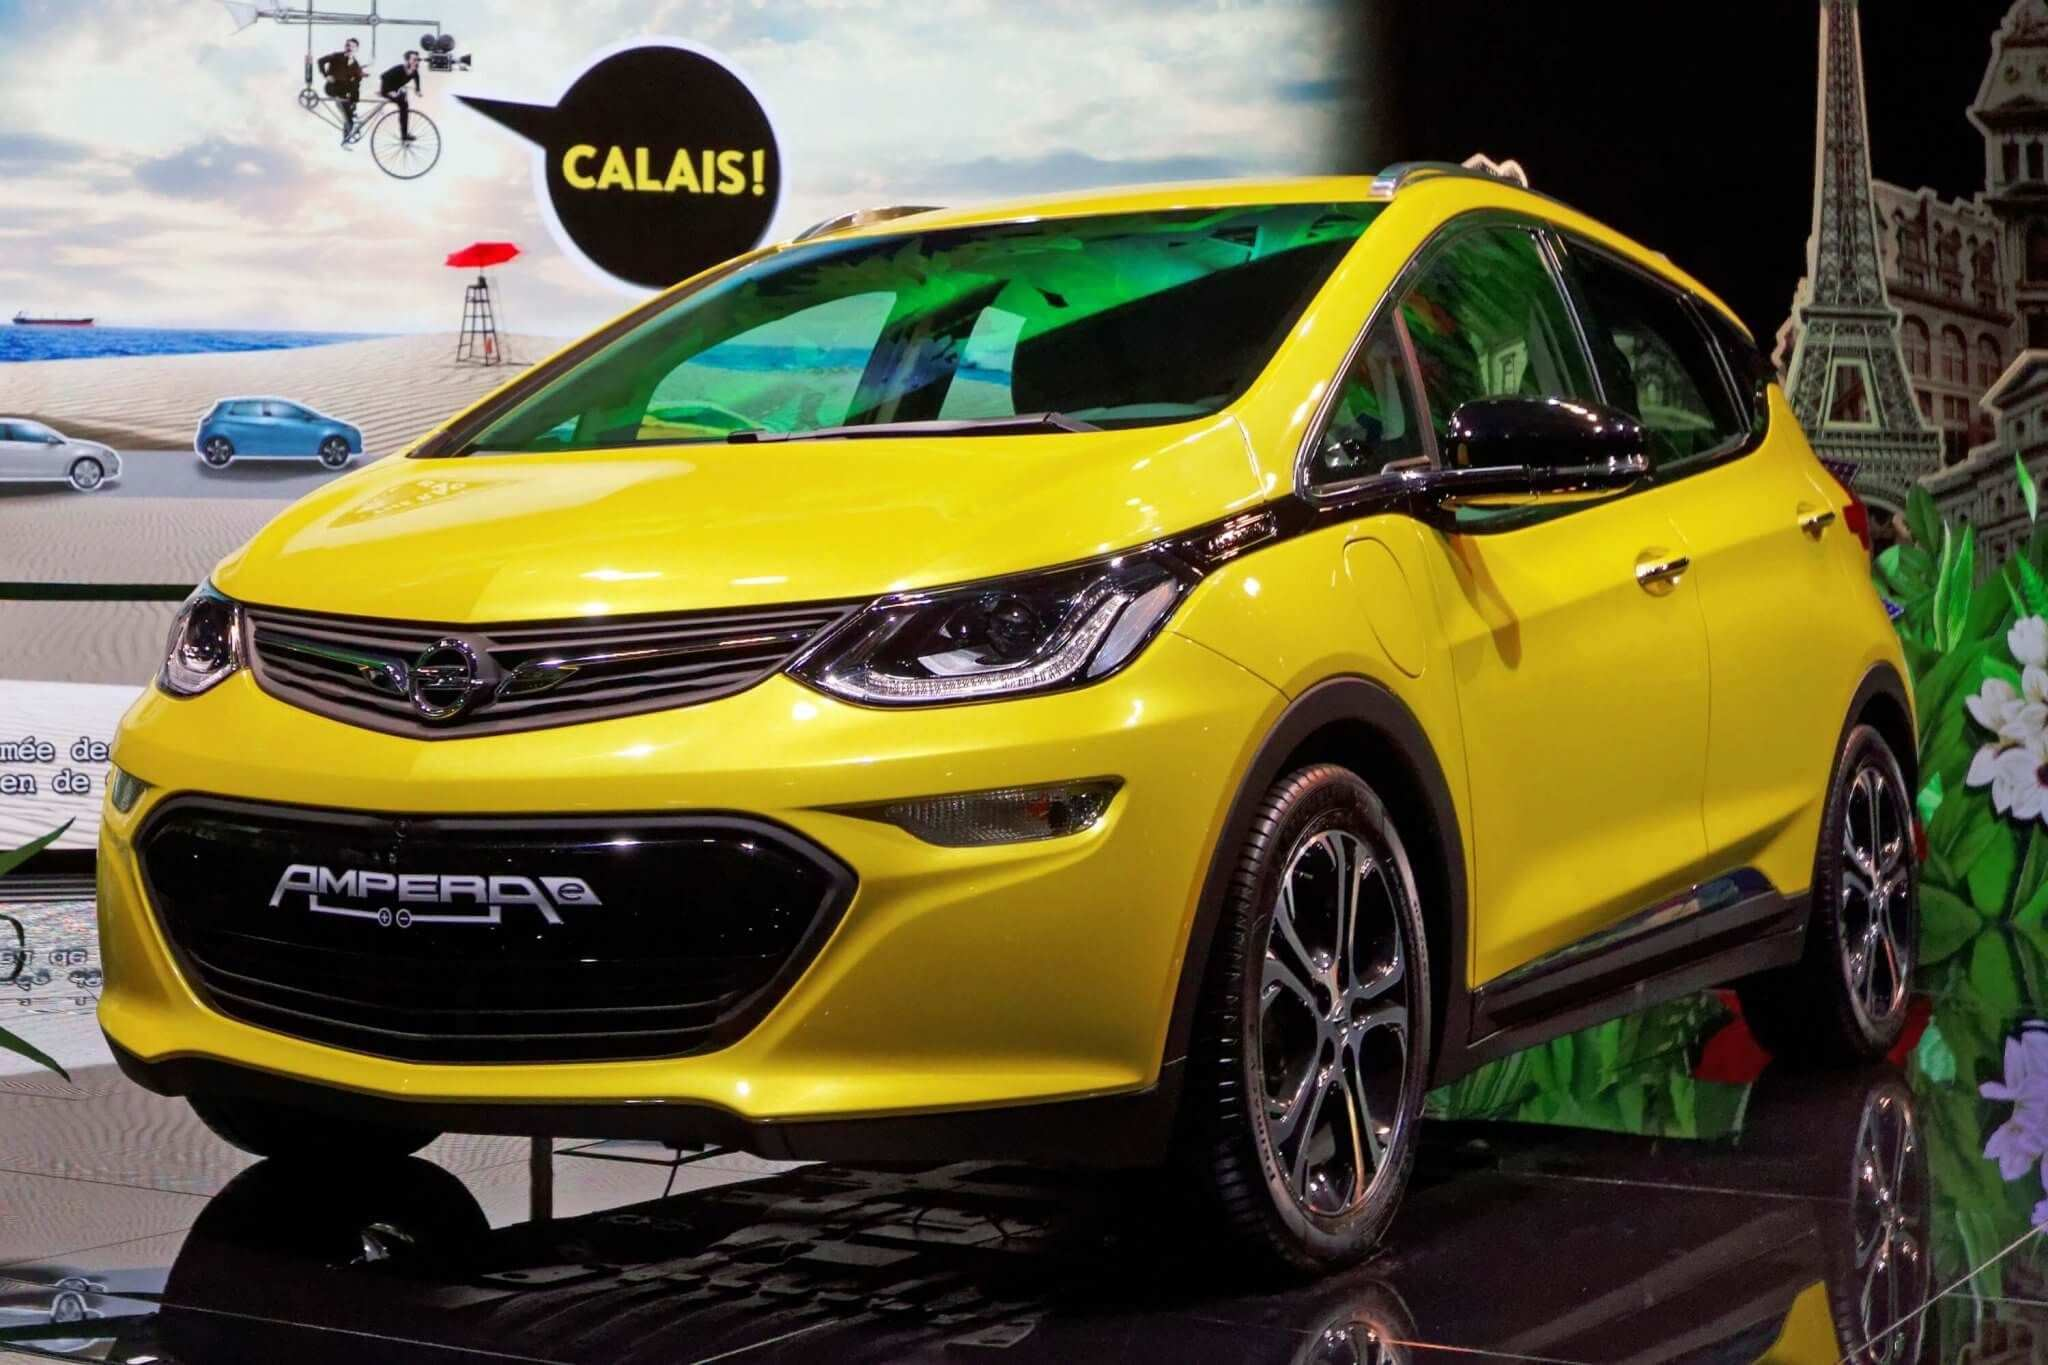 17 New 2020 Opel Ampera 2018 Research New with 2020 Opel Ampera 2018